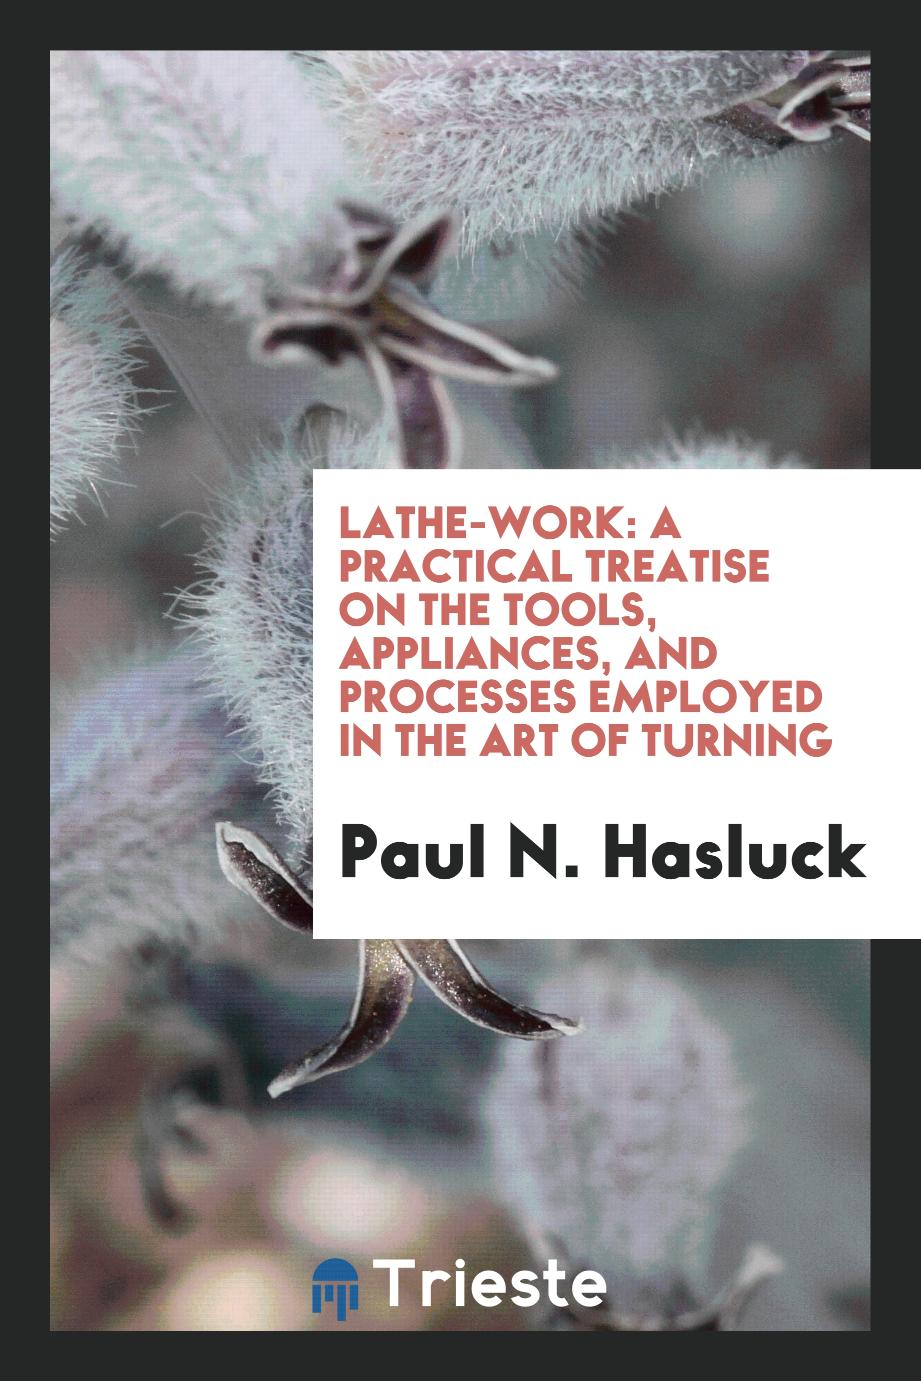 Lathe-Work: A Practical Treatise on the Tools, Appliances, and Processes Employed in the Art of Turning